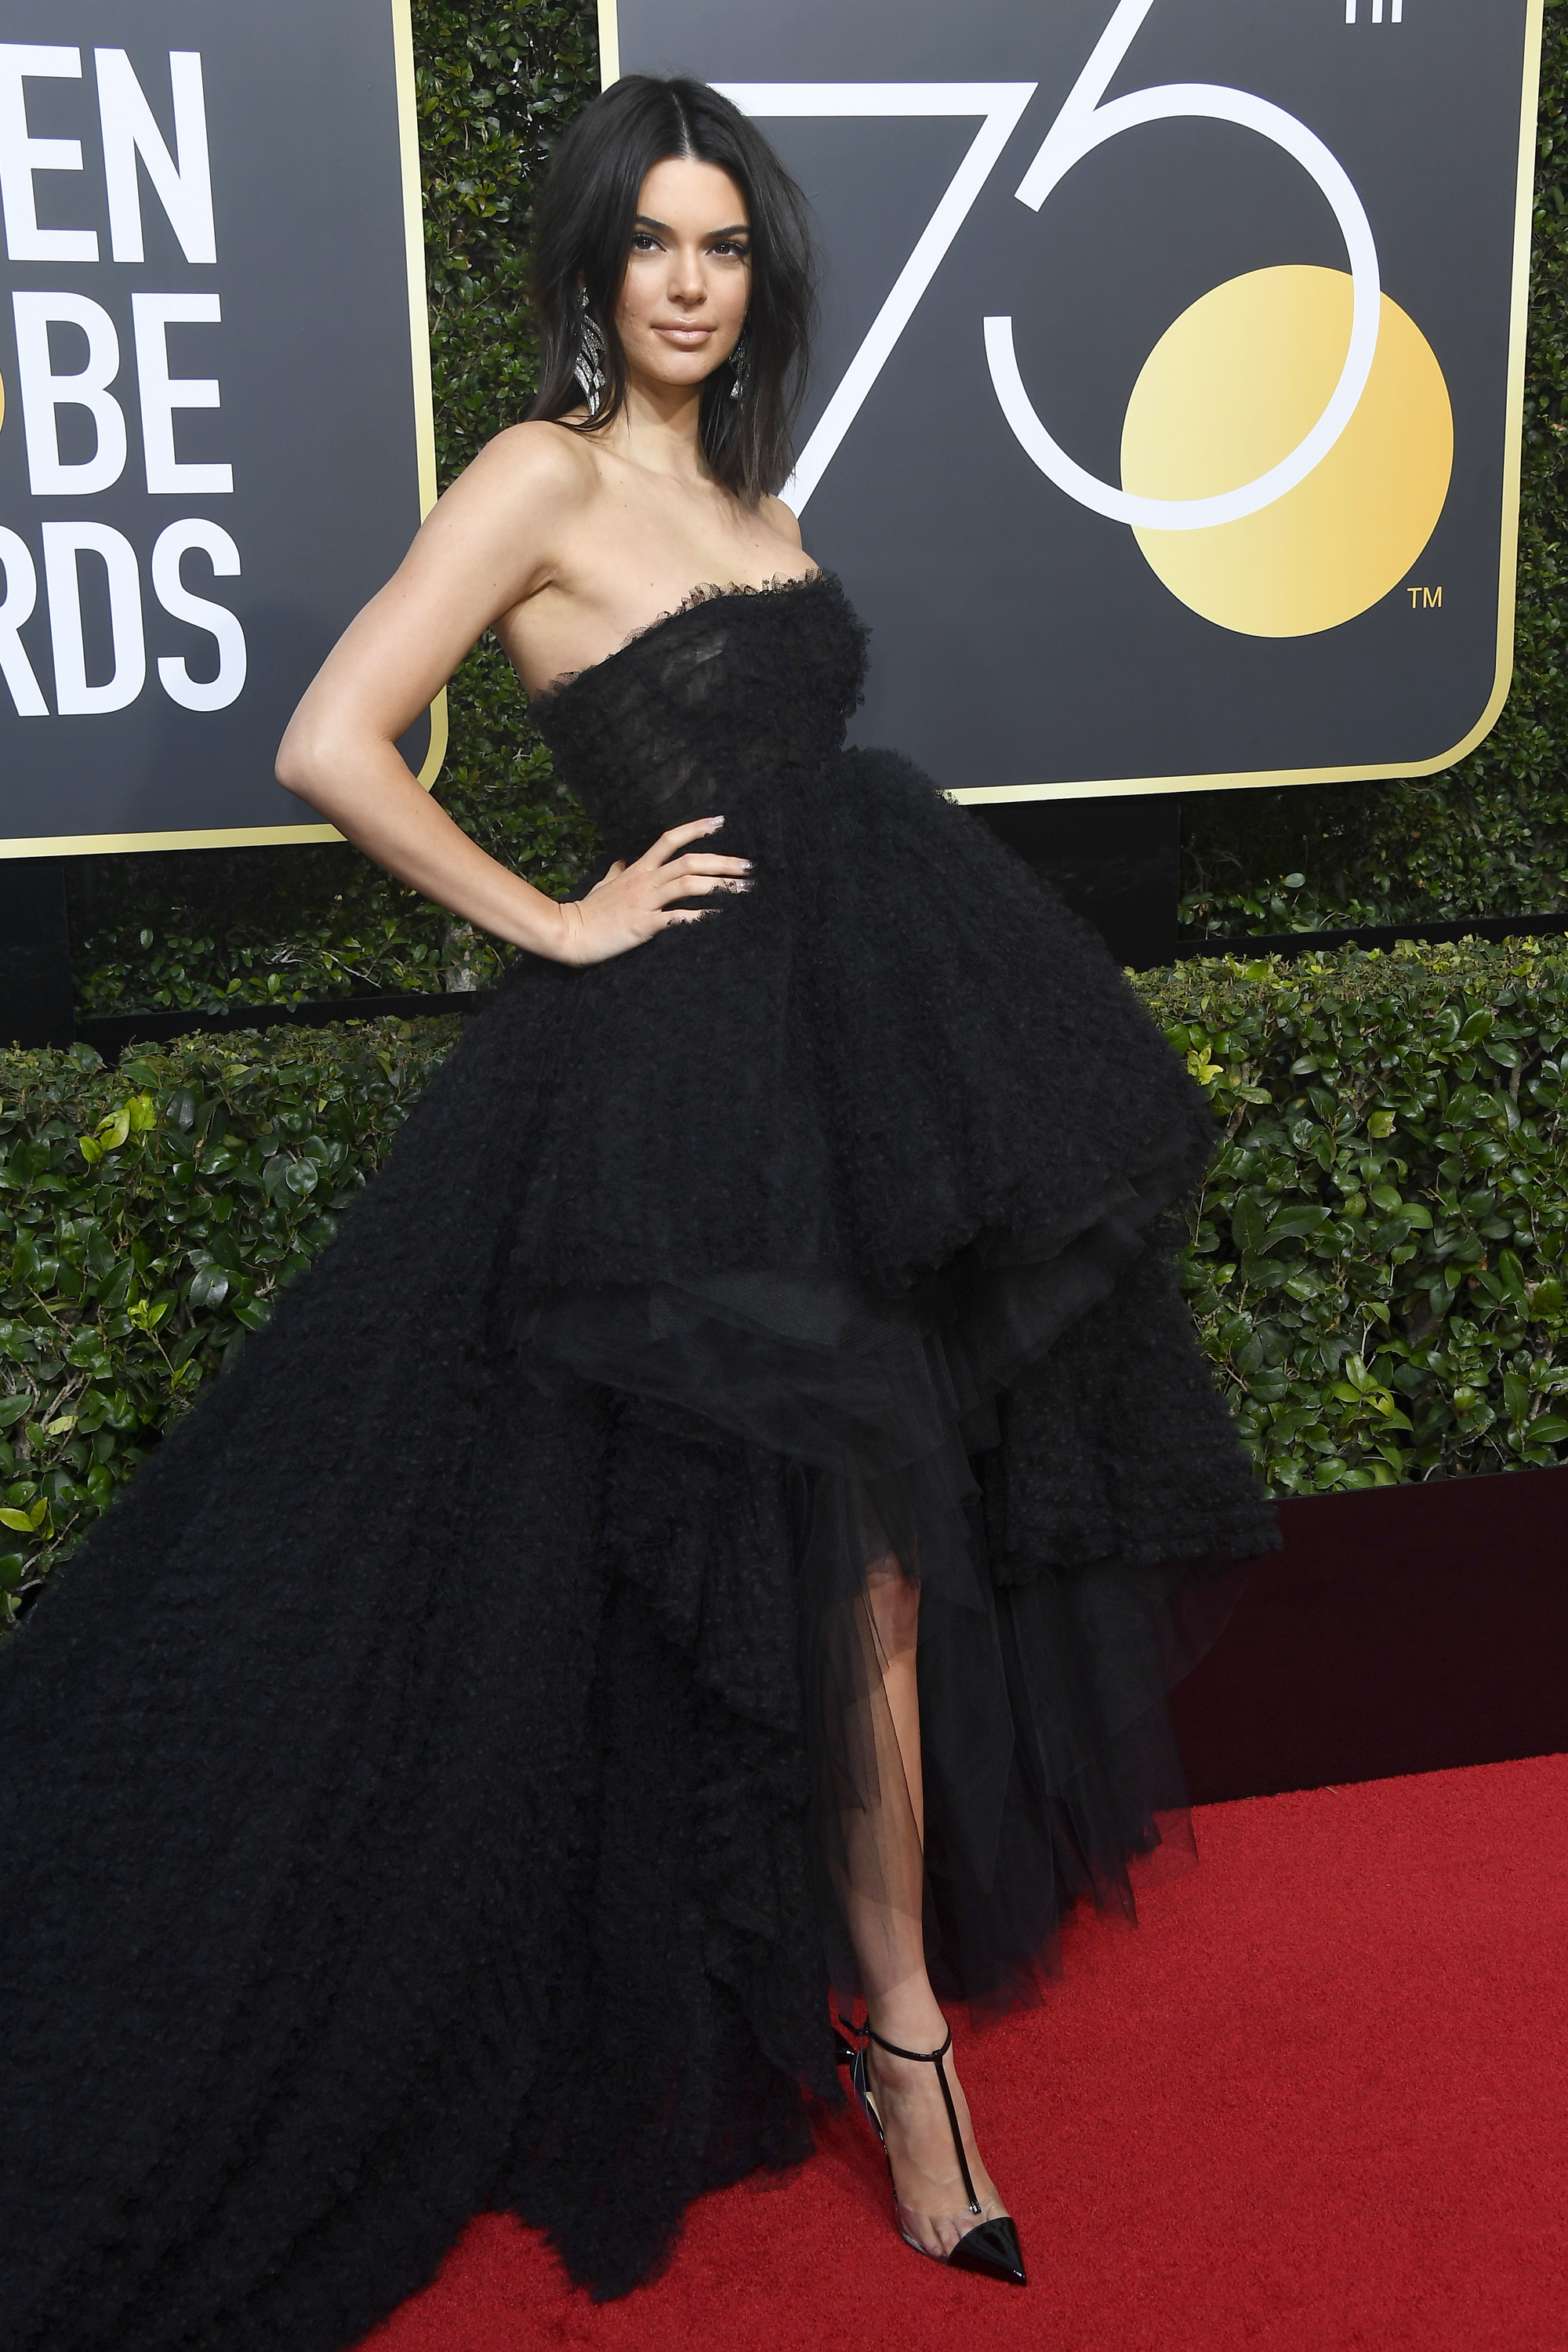 "<a href=""https://style.nine.com.au/2018/01/08/09/34/golden-globes-2018-red-carpet"" target=""_blank"" draggable=""false"">This year's Golden Globes</a> may have been an all-black affair, but that didn't stop the A-list from bringing their A-game when it came to the pursuit of the perfect dark outfit.<br /> <br /> Kendall Jenner frolicked in Giambattista Valli Haute Couture, Alicia Vikander made a splash in Louis Vuitton and actress Bianca Blanco stood out for all the wrong reasons.<br /> <br /> The Golden Globes weren't the only occasion this week that offered up unique sartorial offerings. <a href=""https://style.nine.com.au/2018/01/12/08/50/critics-choice-awards-2018-red-carpet"" target=""_blank"" draggable=""false"">The Critics Choice Awards </a>and Yolanda Hadid's reality show premiere also set the tone for attire that will be hard to forget. <br /> <br /> In no particular order, here are Honey Style's most talked about looks from this week."